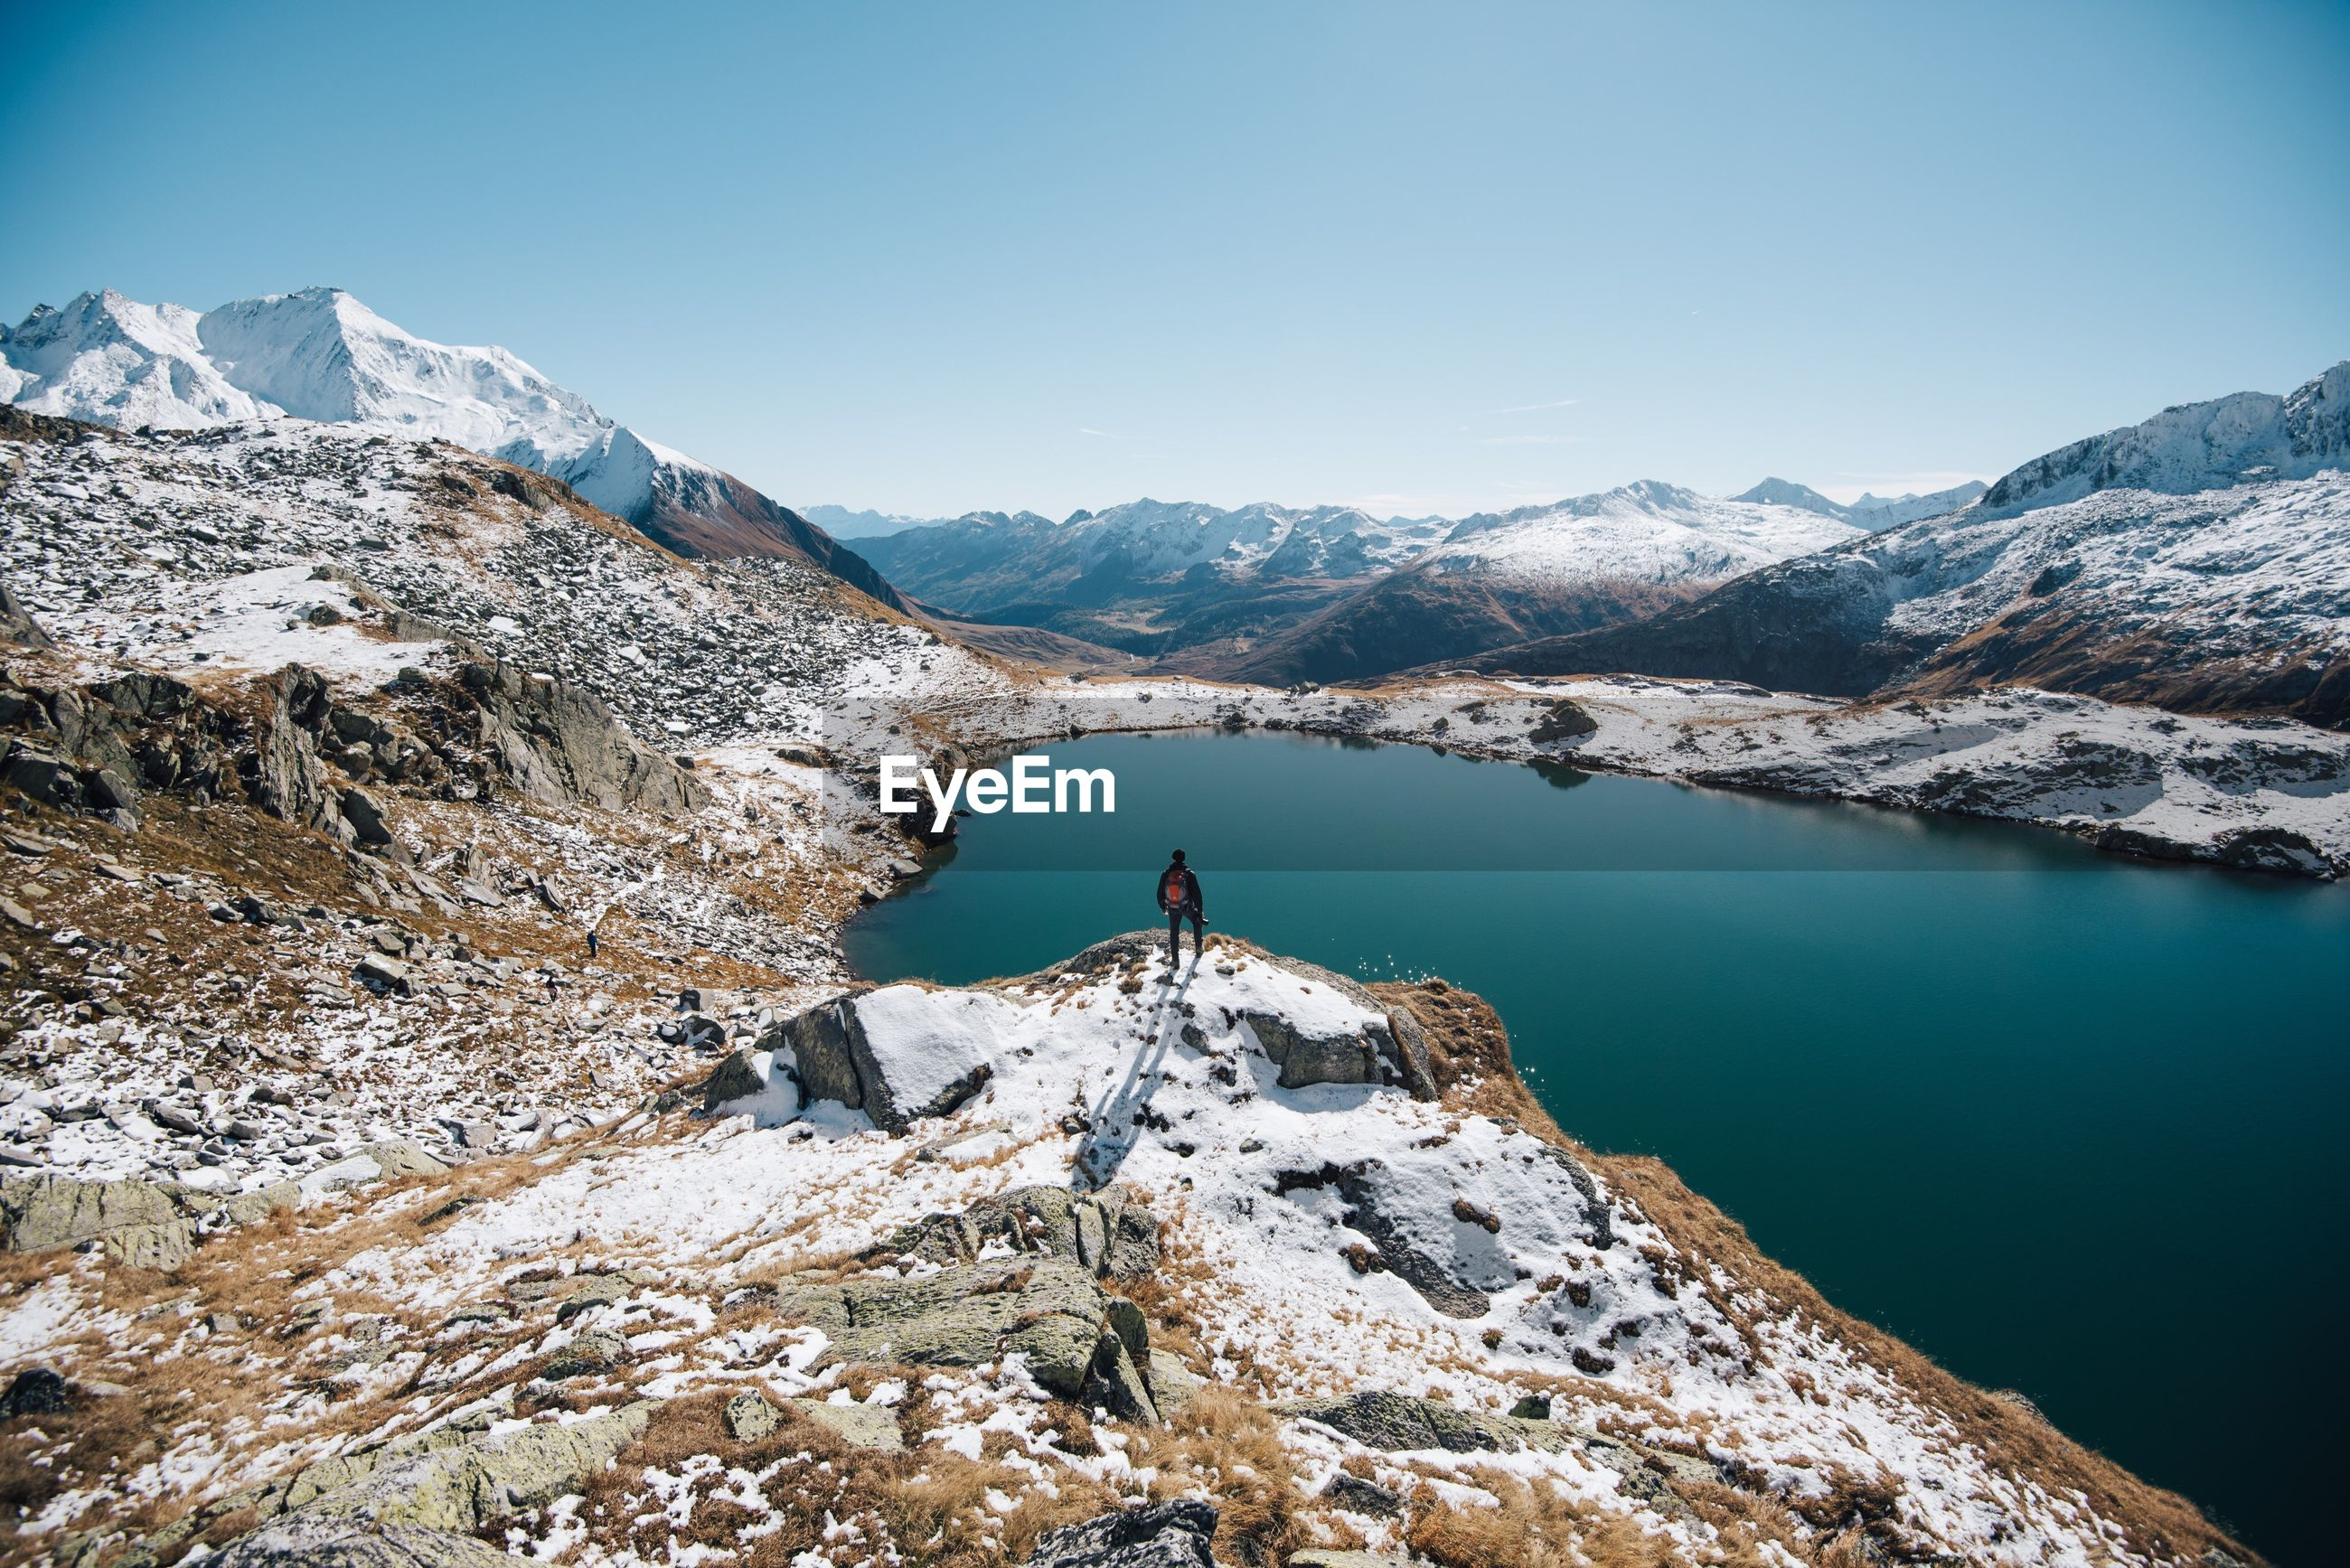 mountain, snow, tranquil scene, cold temperature, lake, winter, scenics, mountain range, tranquility, water, beauty in nature, clear sky, landscape, non-urban scene, idyllic, nature, season, reflection, remote, blue, calm, snowcapped mountain, valley, vacations, sky, day, adventure, physical geography, geology, mountain peak